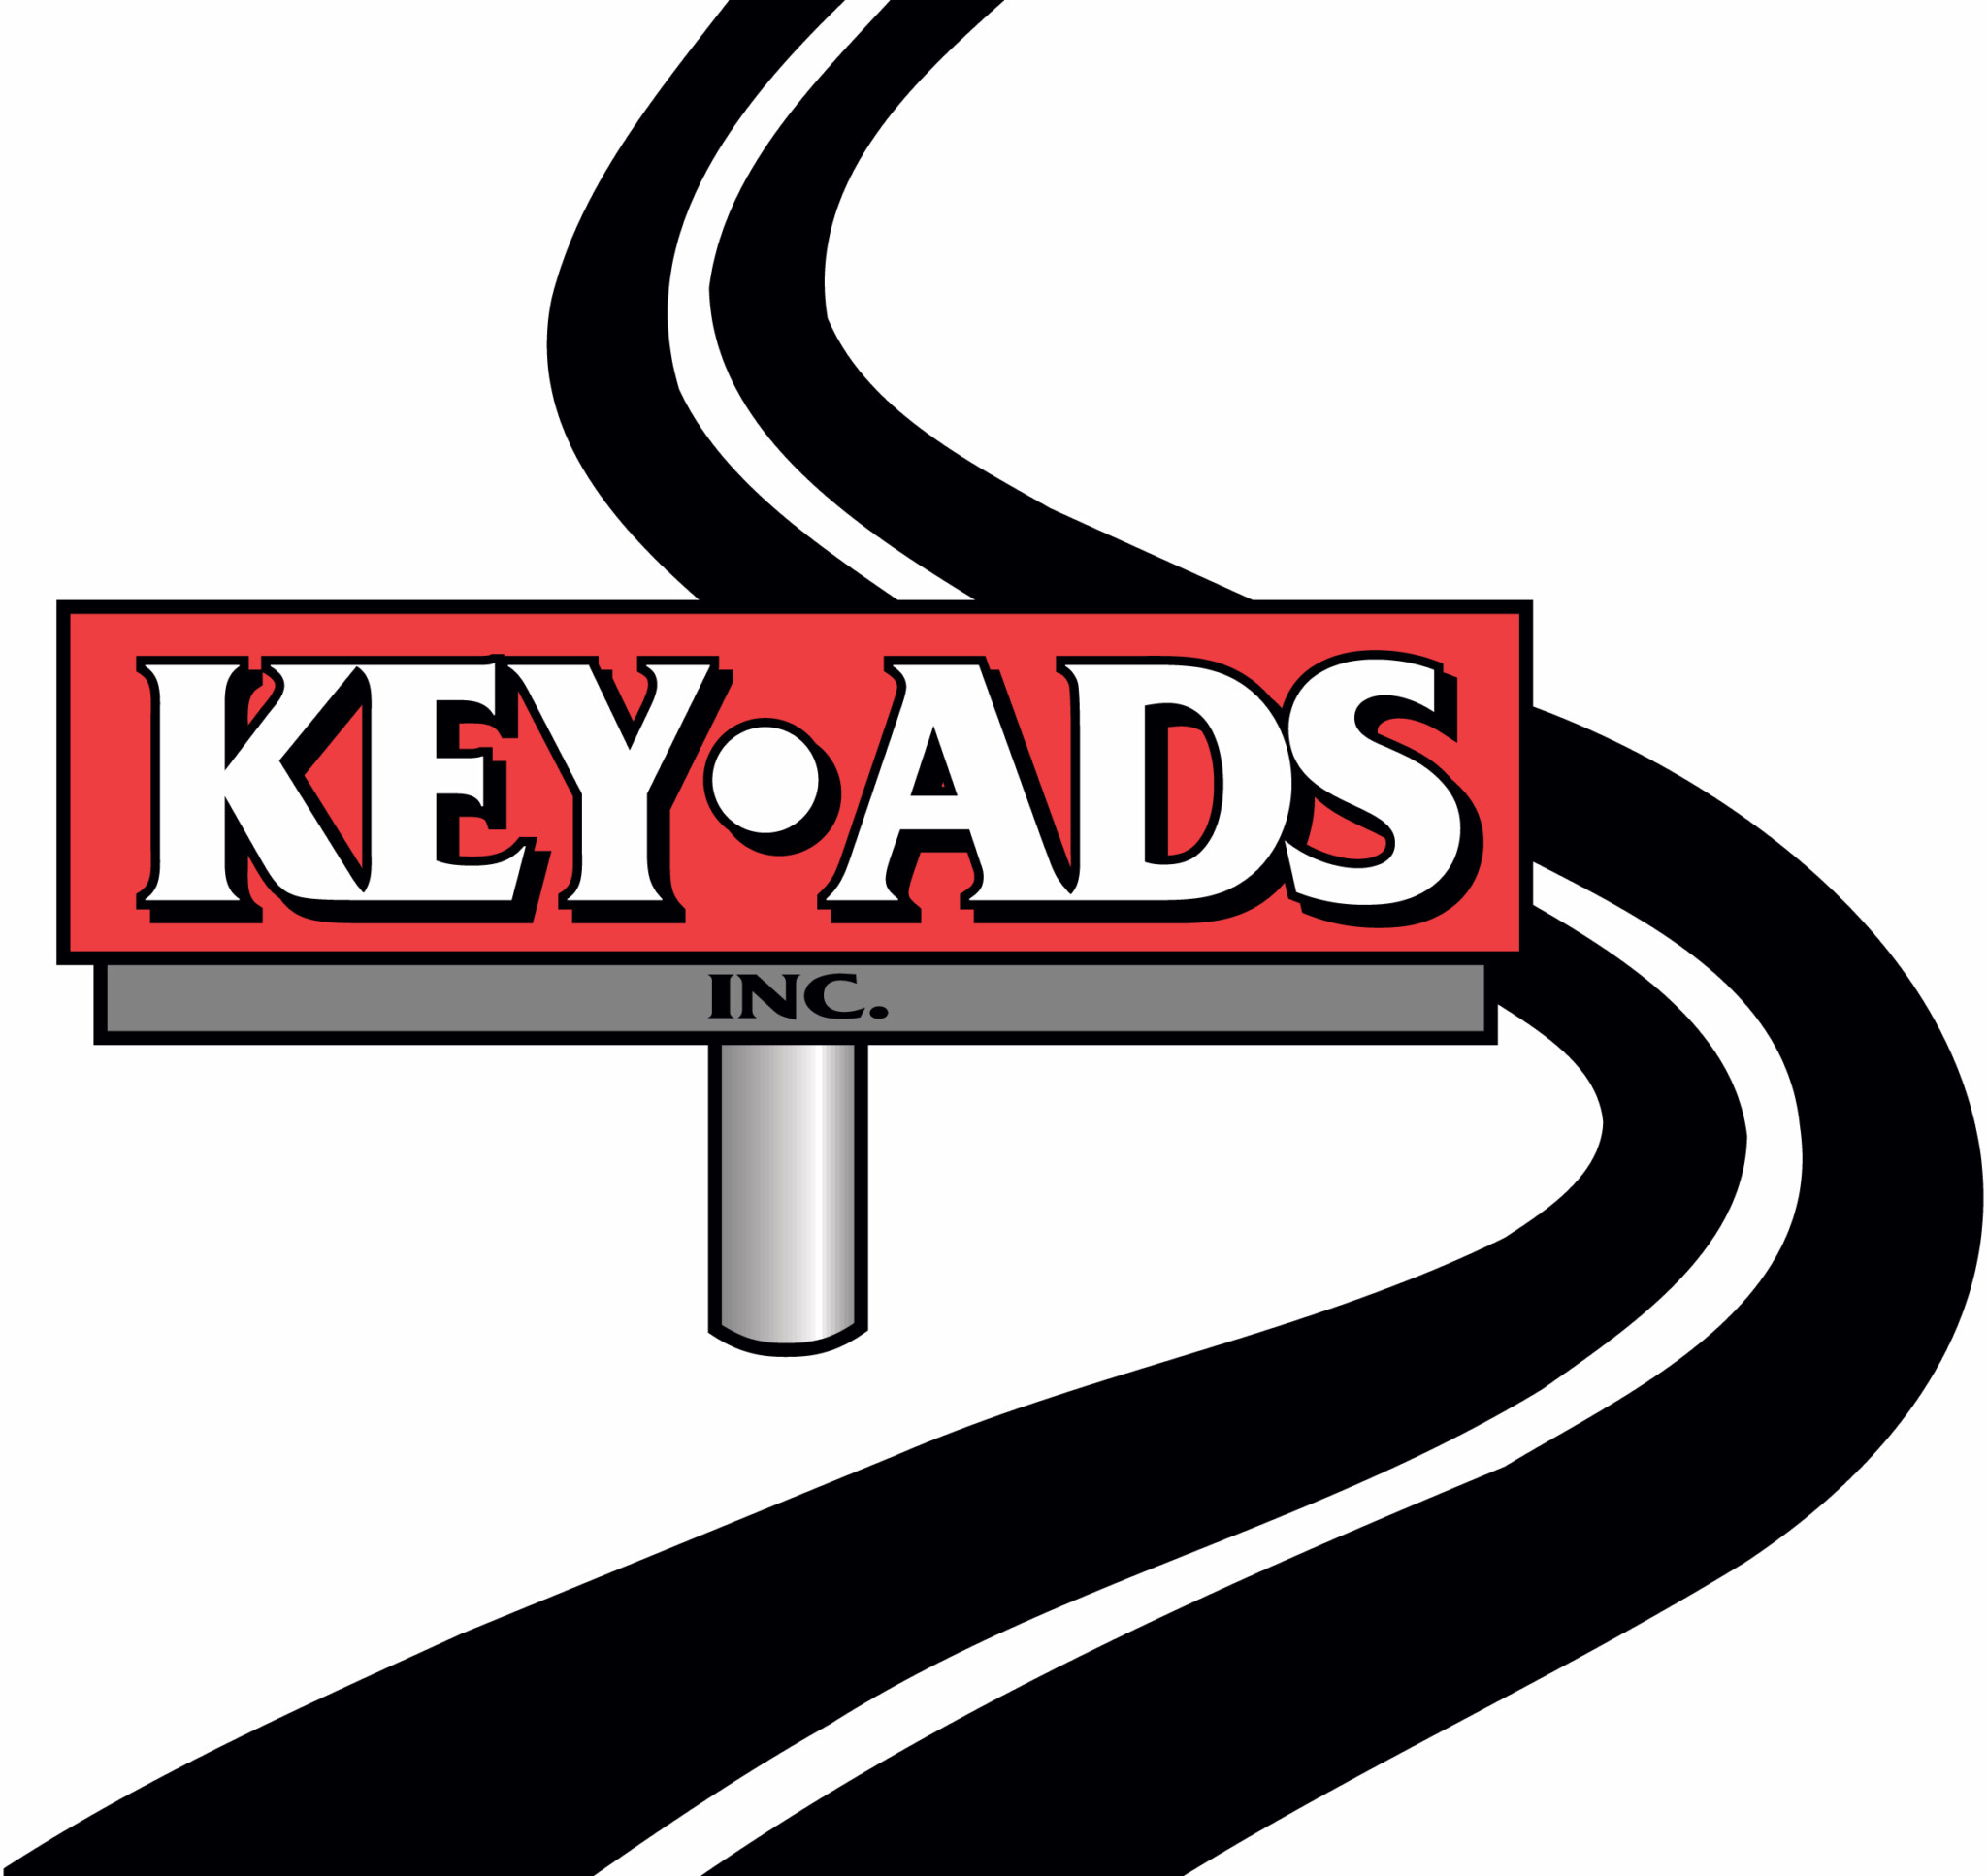 KEY•ADS LOGO